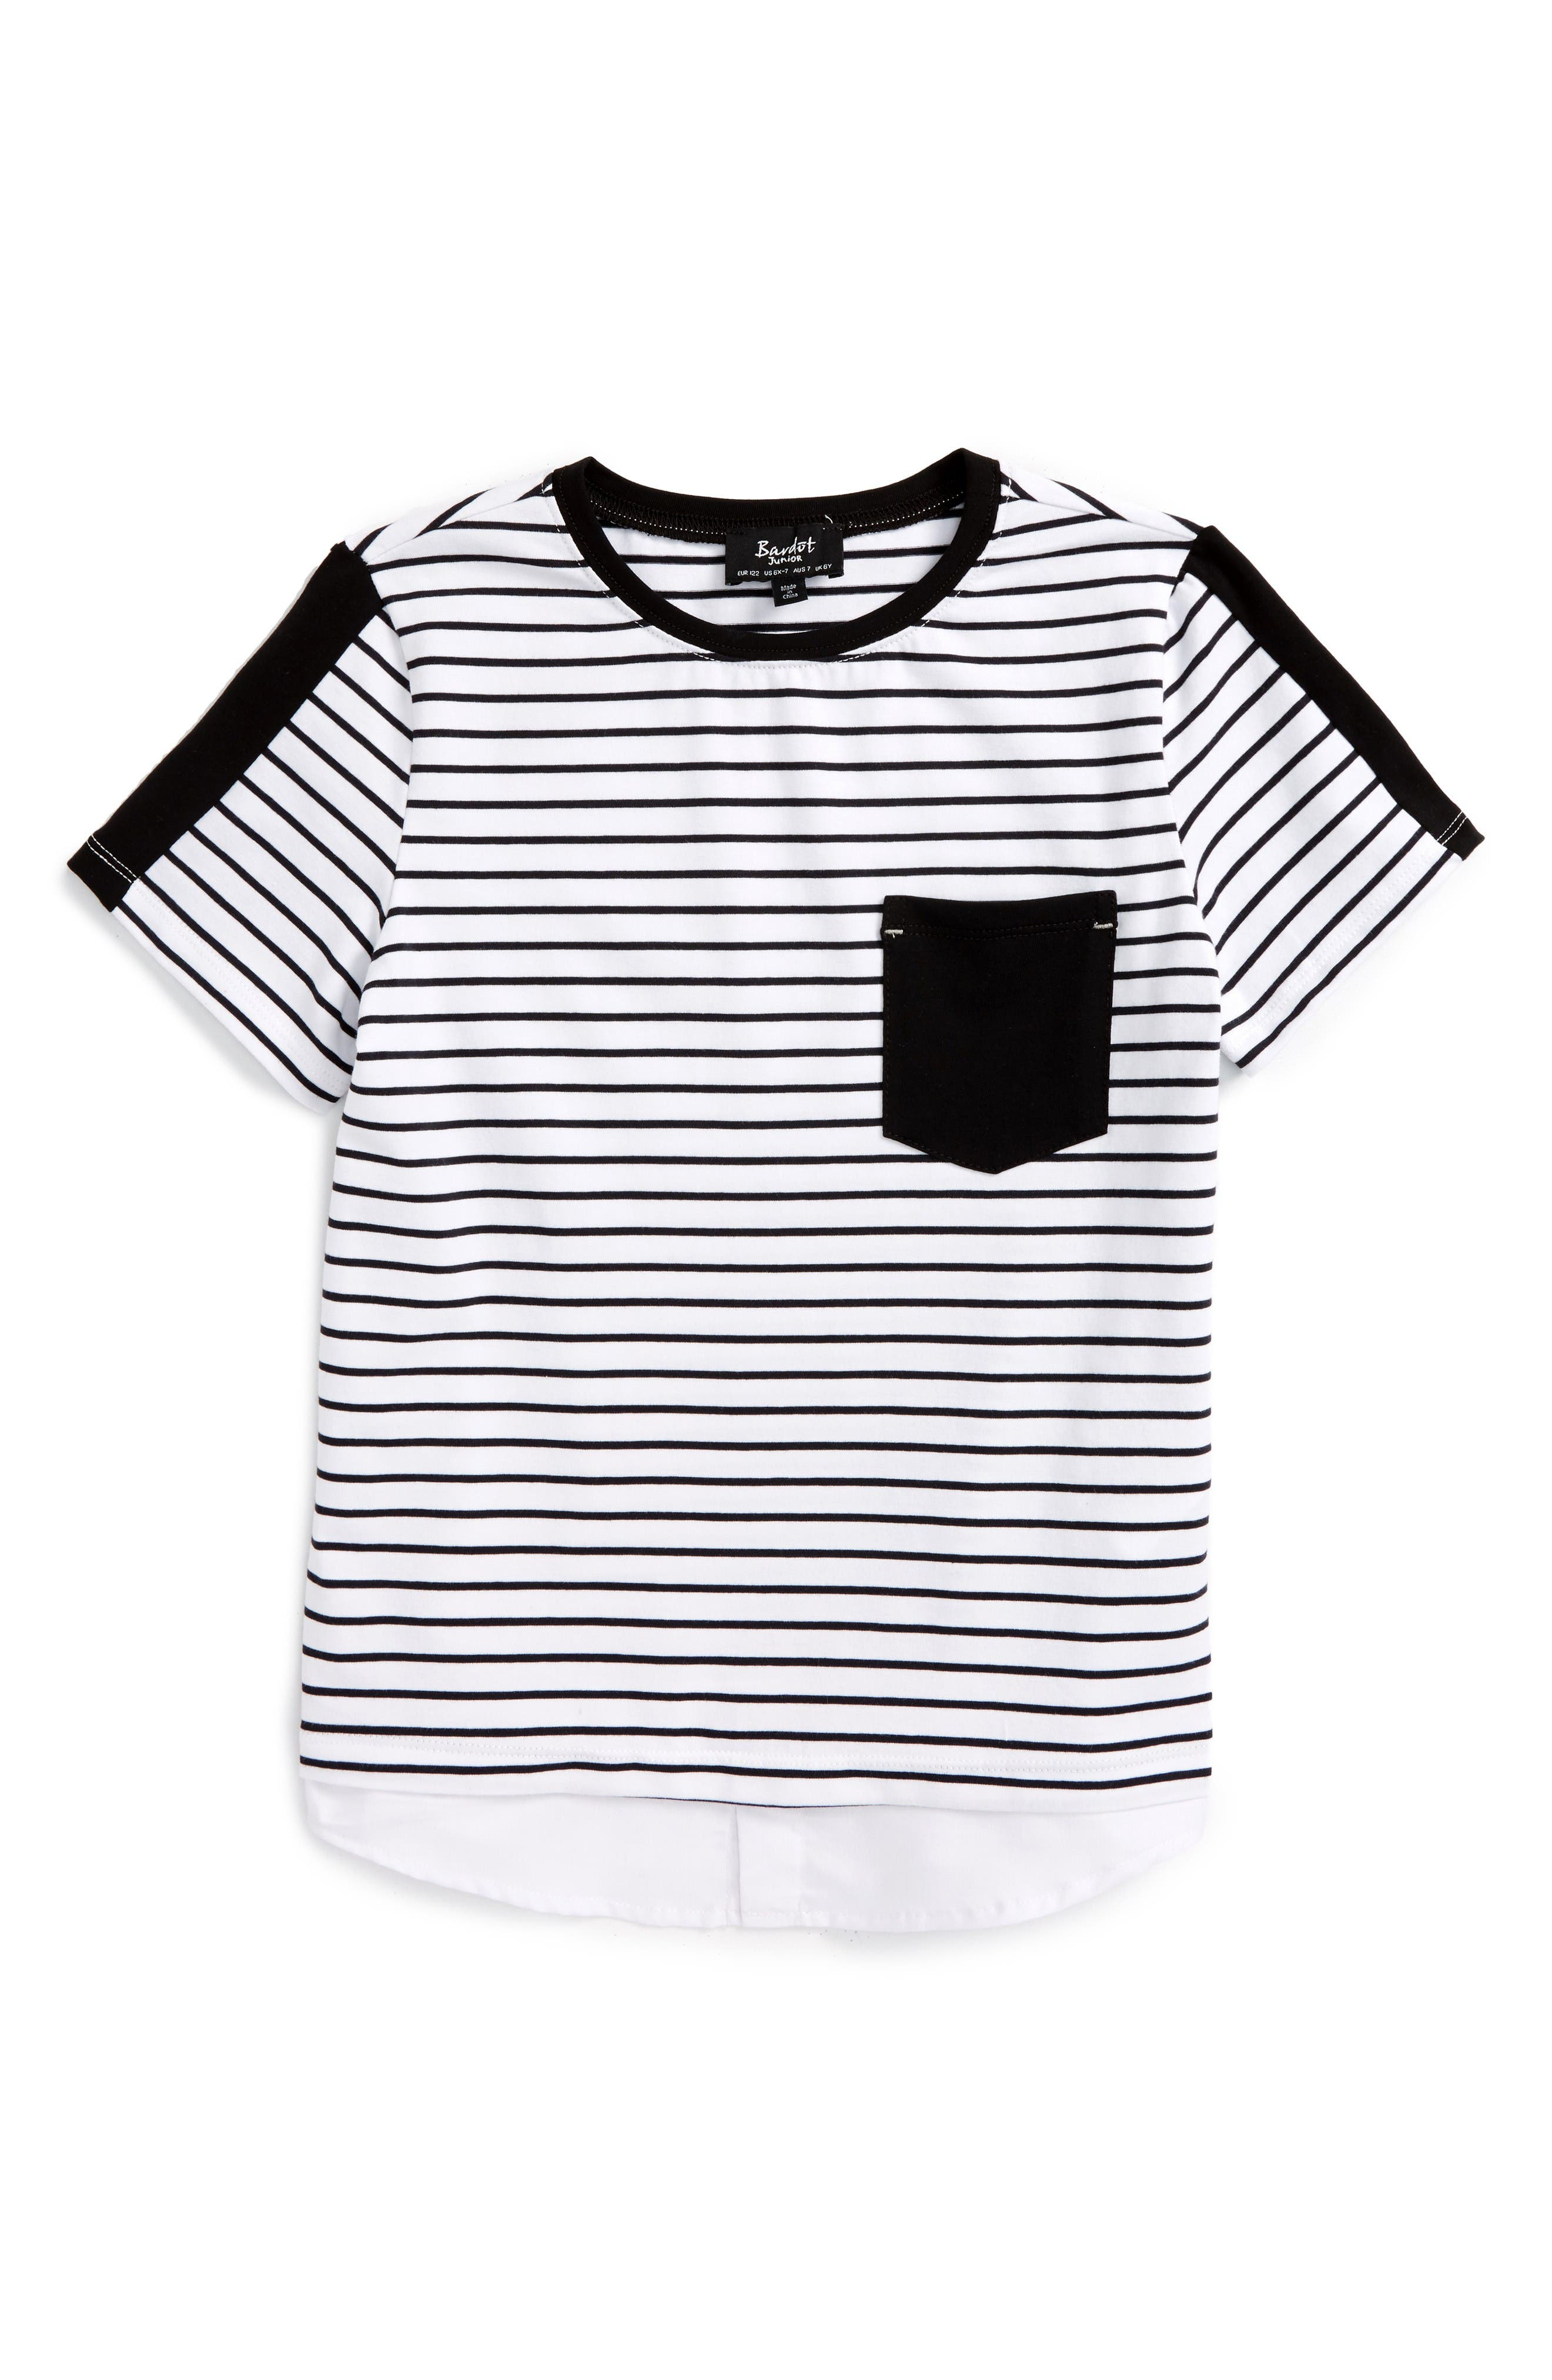 Main Image - Bardot Junior Stripe T-Shirt (Toddler Boys & Little Boys)